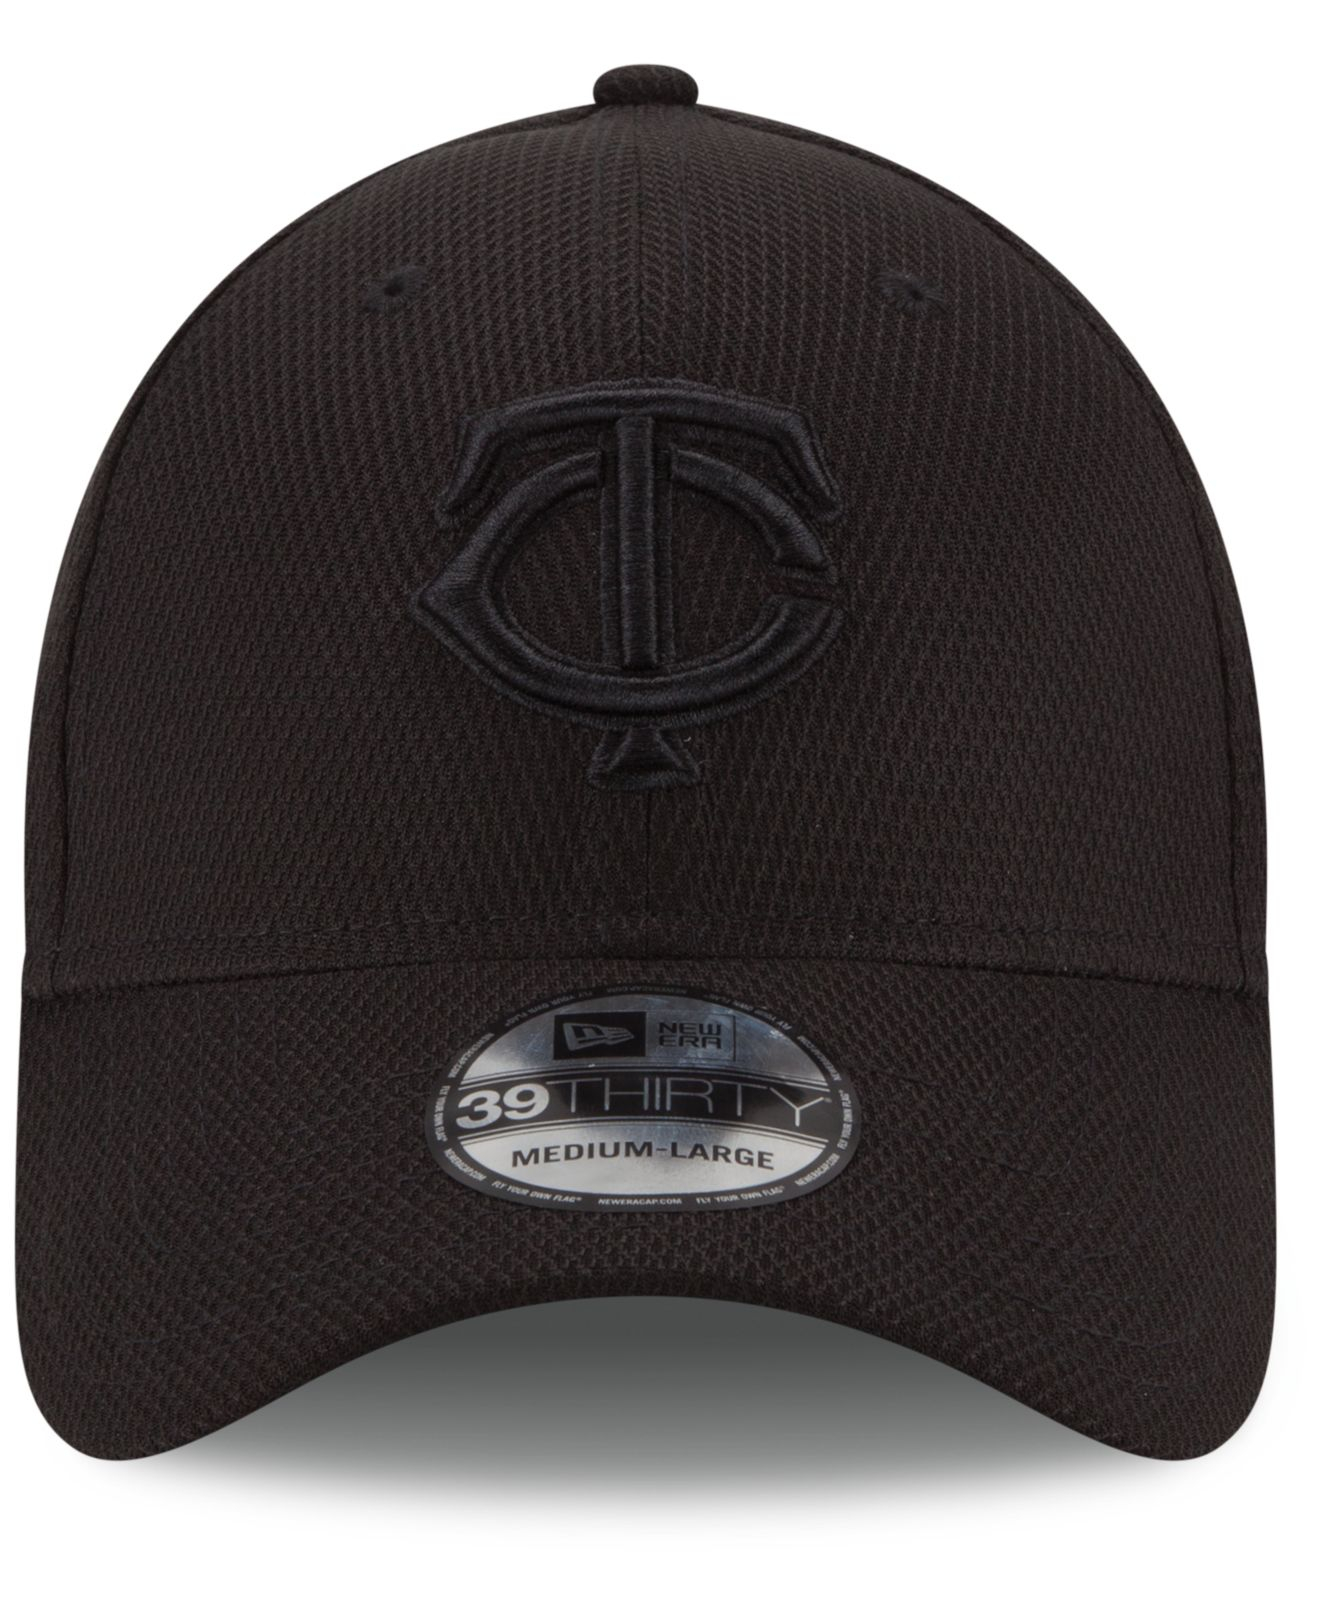 Lyst - KTZ Minnesota Twins Black Diamond Era 39thirty Cap in Black ... c0bb038f579